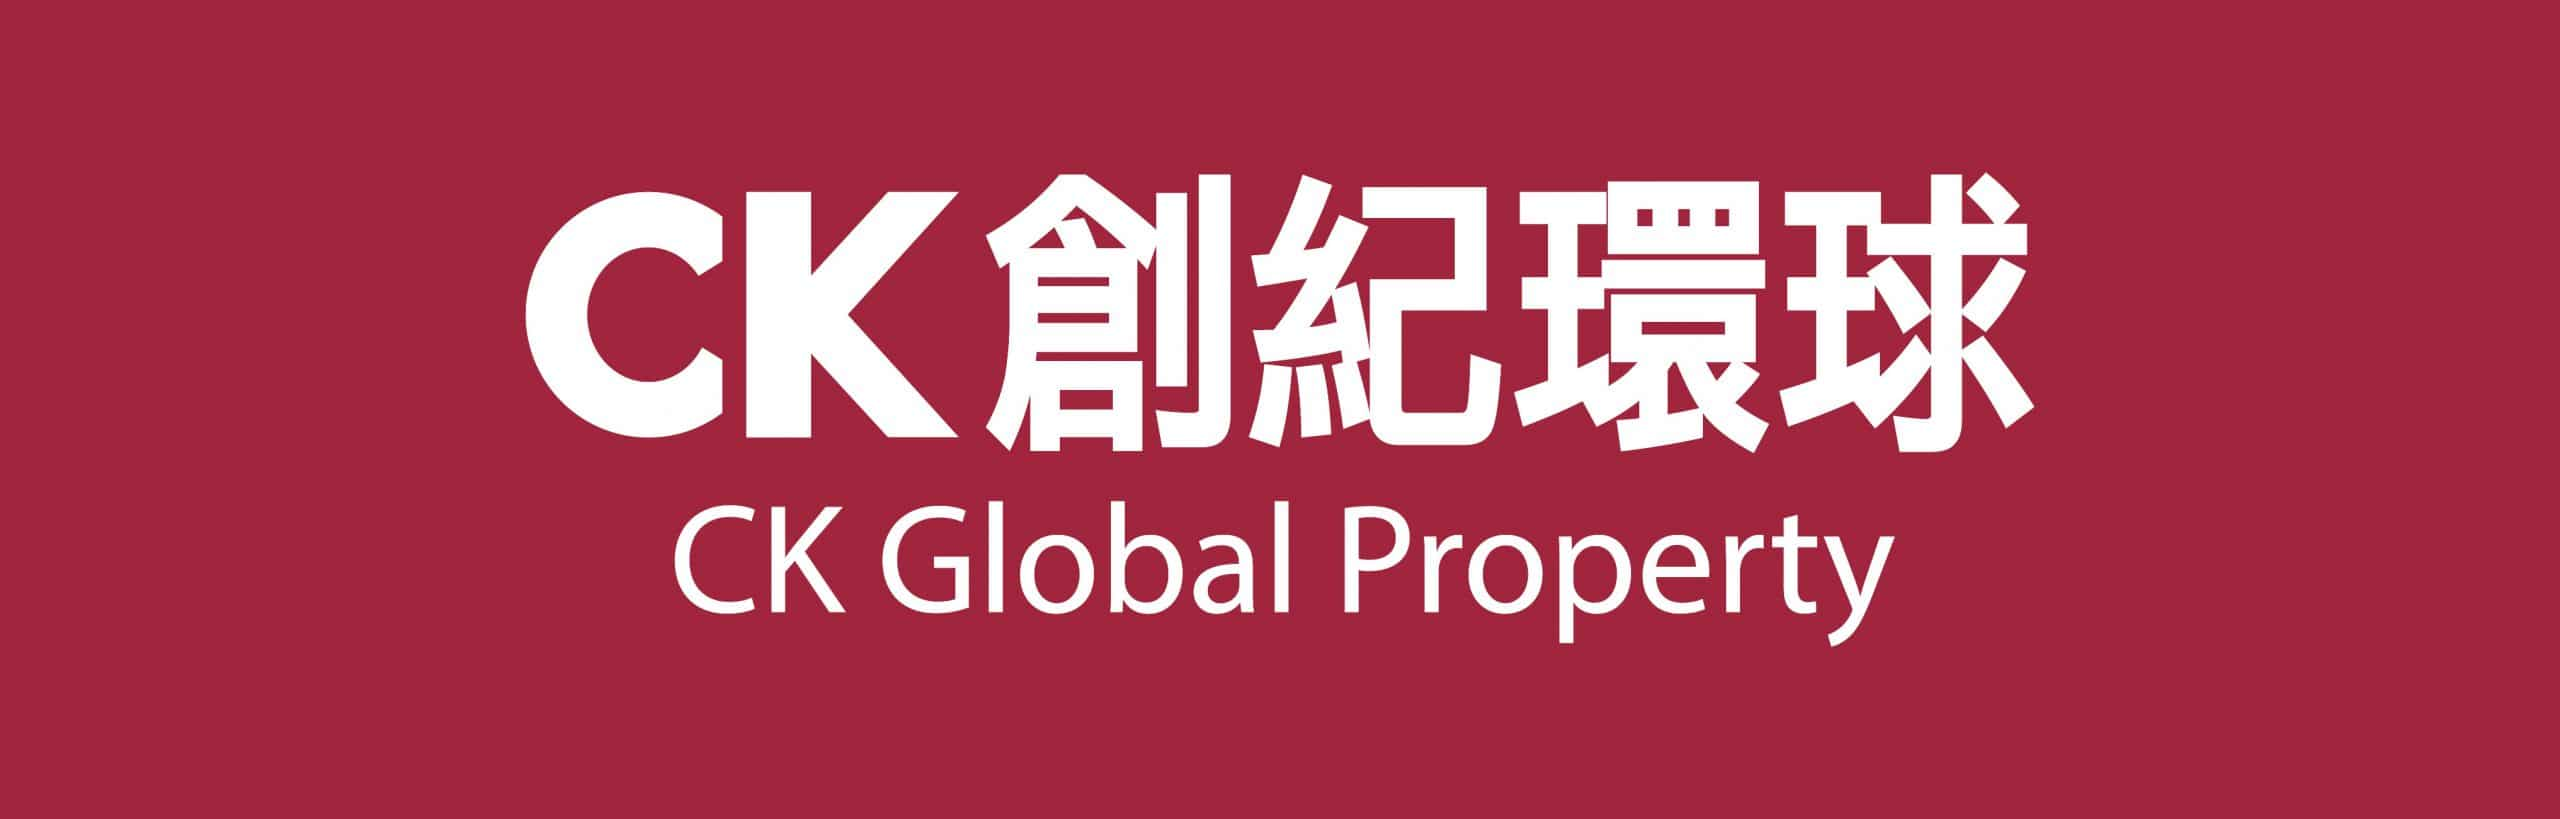 CK Global Property Limited 創紀環球置業有限公司